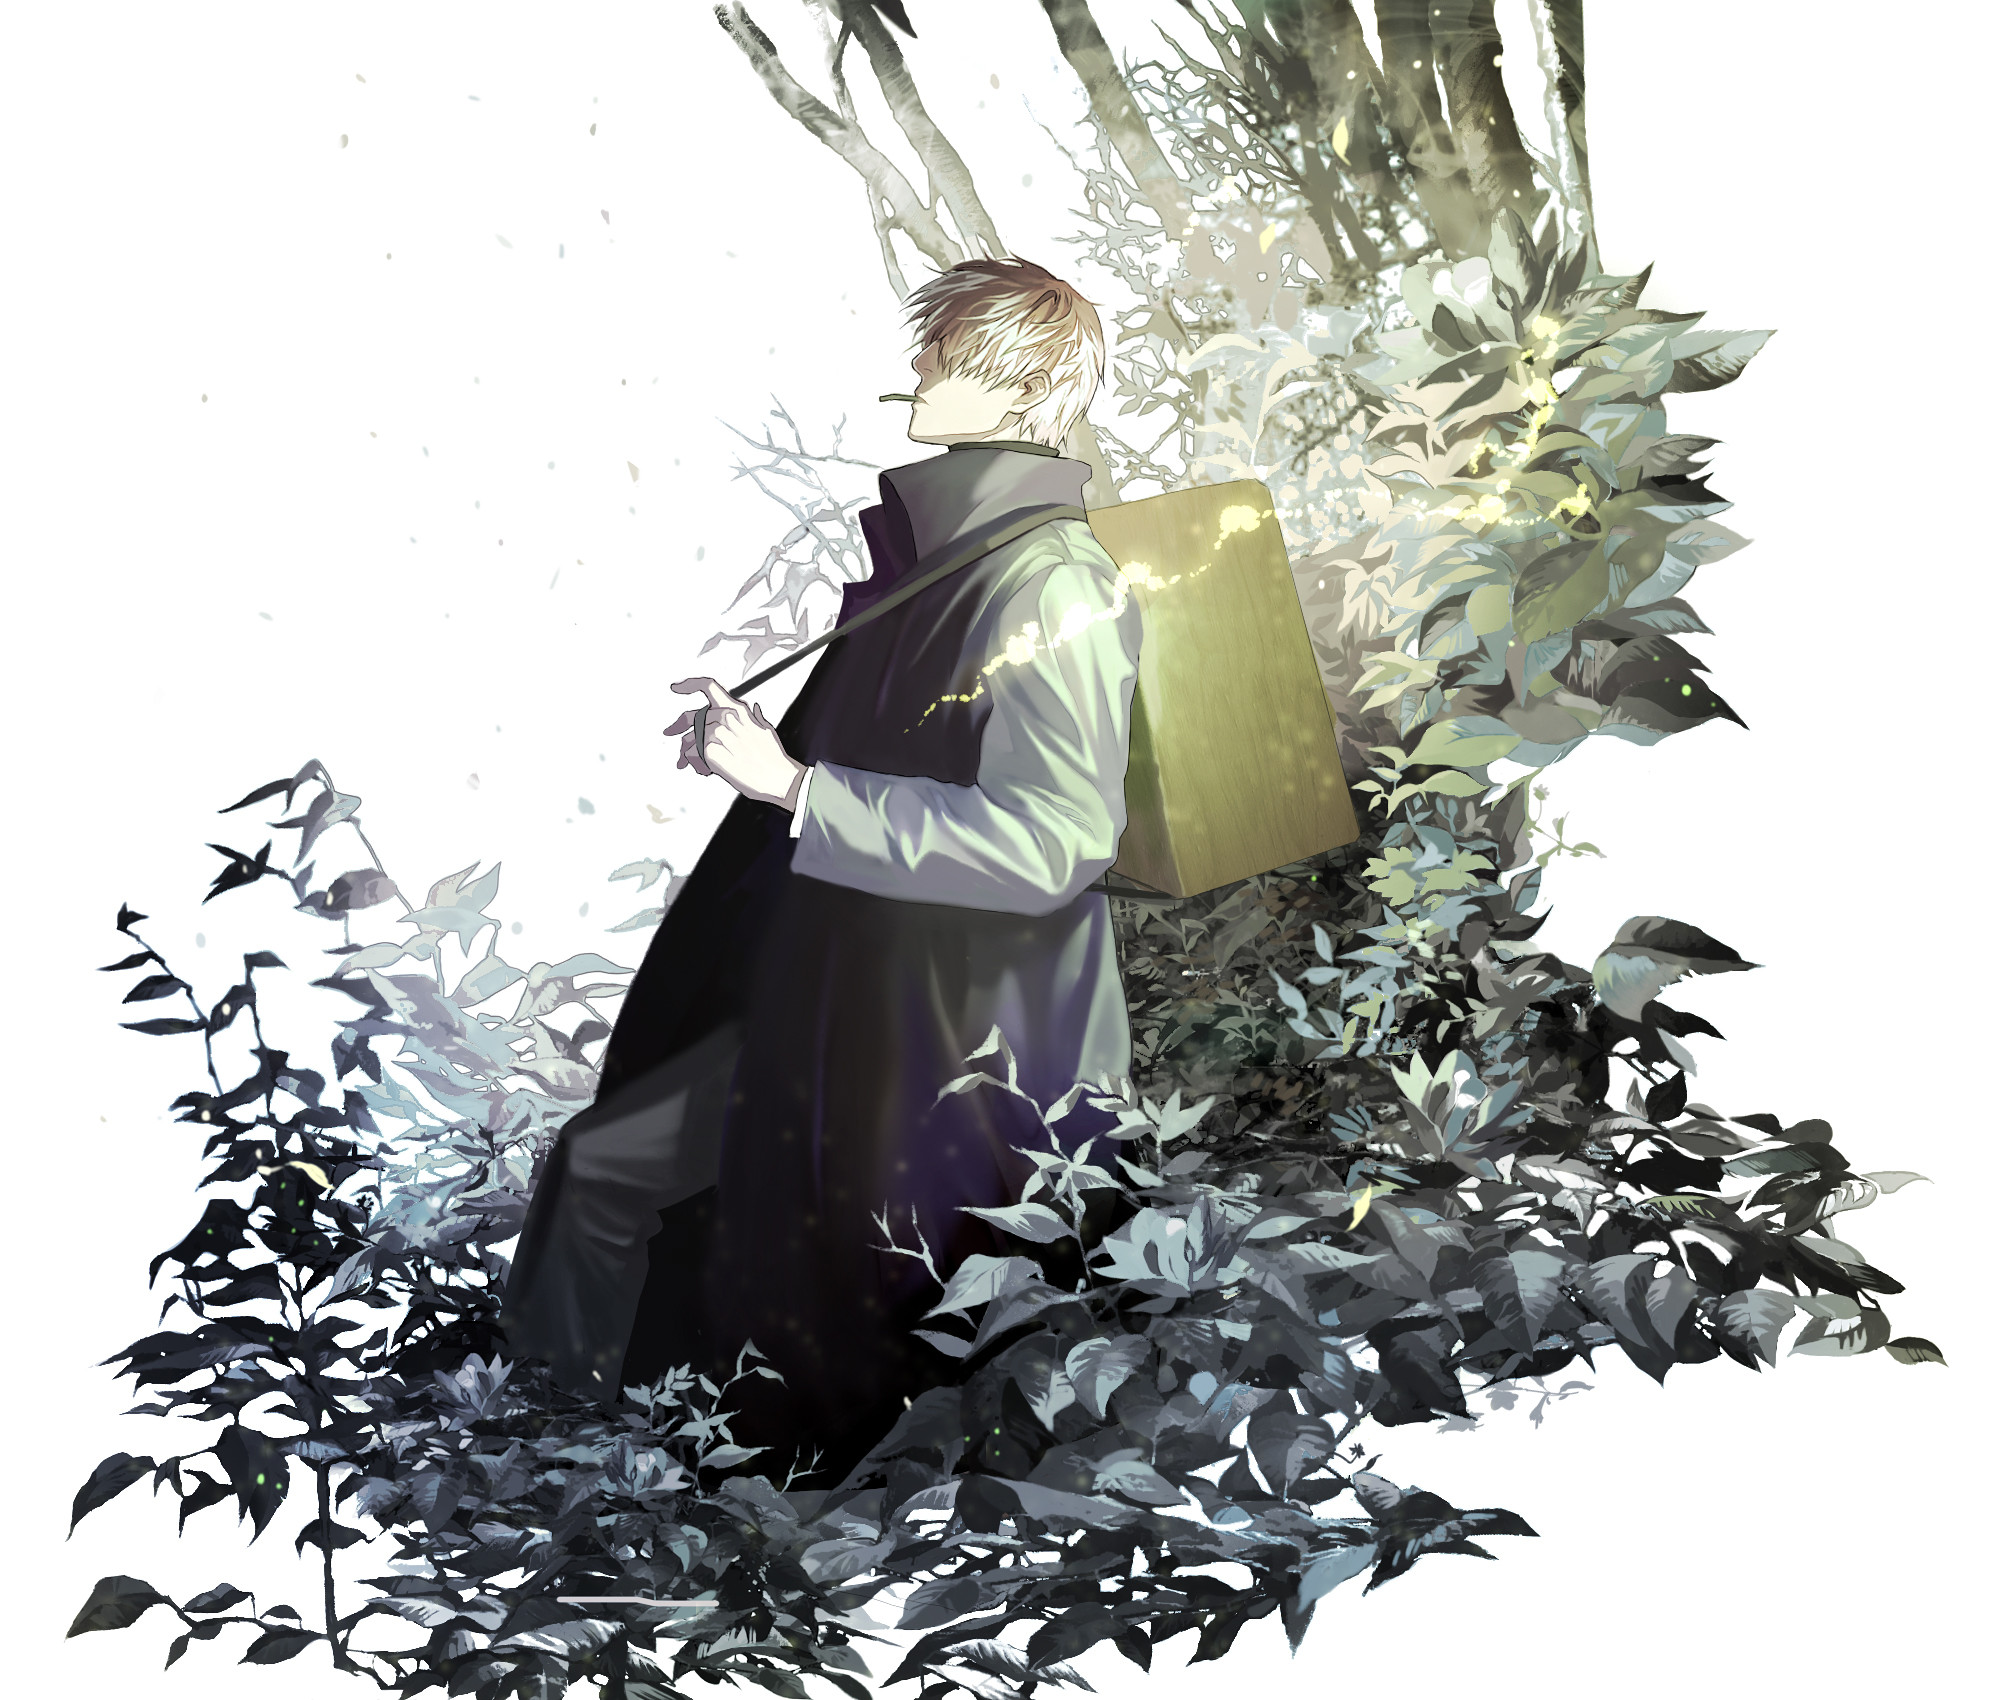 Res: 2000x1700, Ginko (Mushishi) download Ginko (Mushishi) image